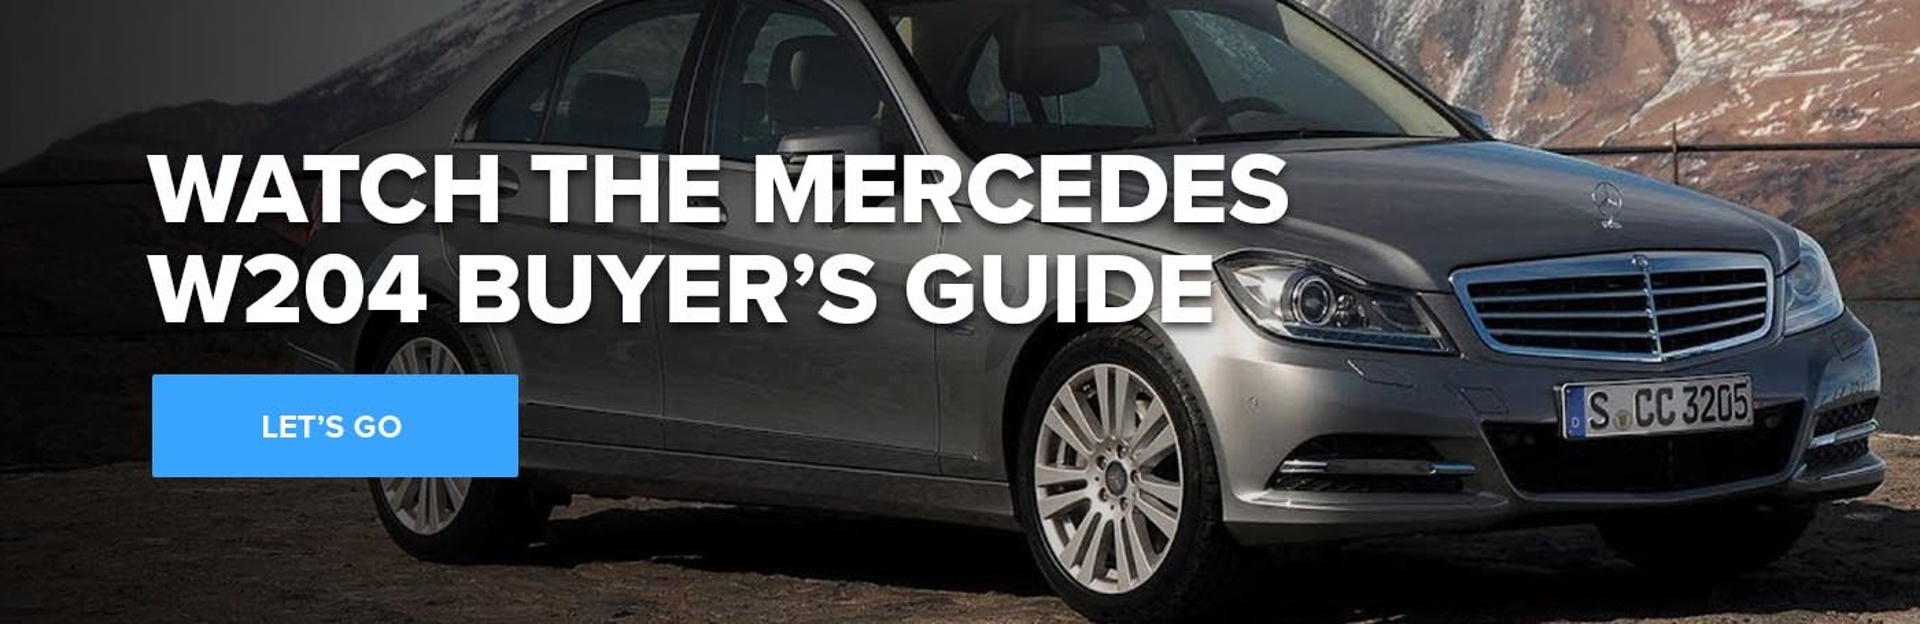 Watch the Mercedes-Benz W204 Buyer's Guide